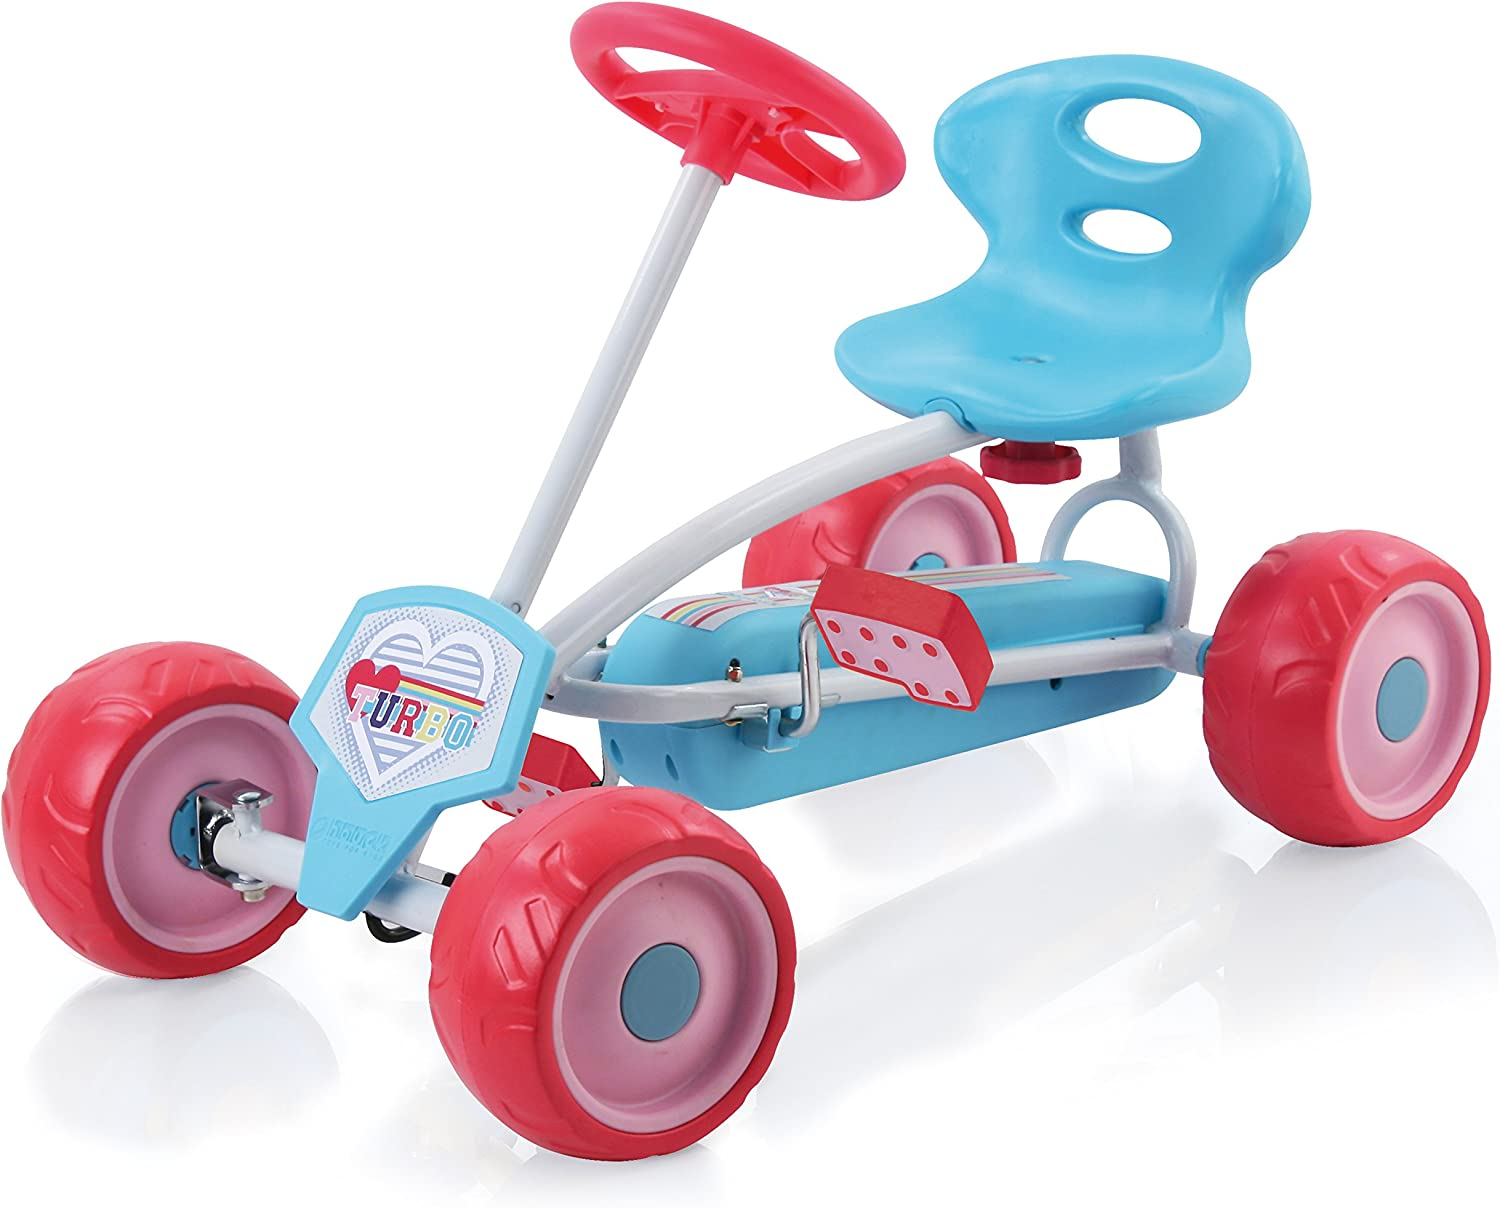 Hauck Lil&Rsquo;Turbo Pedal gehen Kart, Blue/Pink